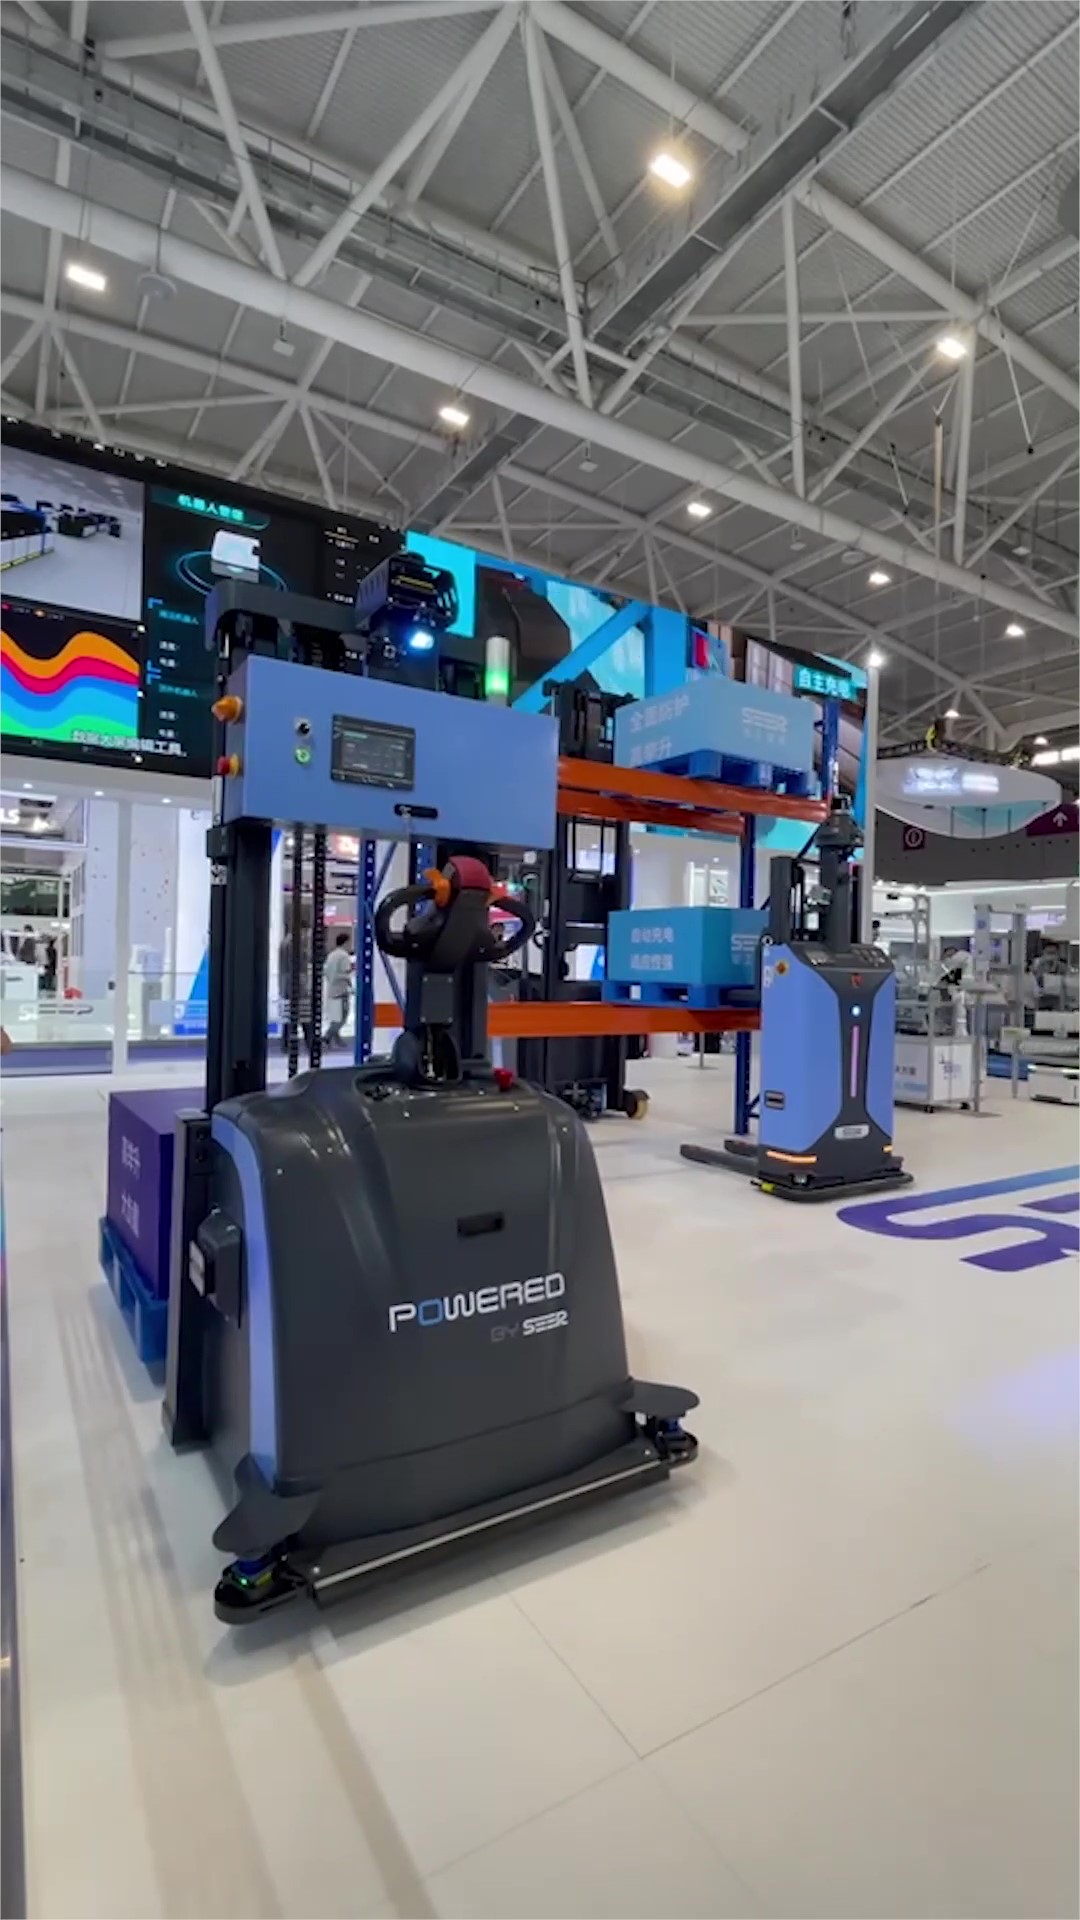 NO.3丨 SEER in ITES CHINA, Multi-robots Scheduling Makes Handling Easier